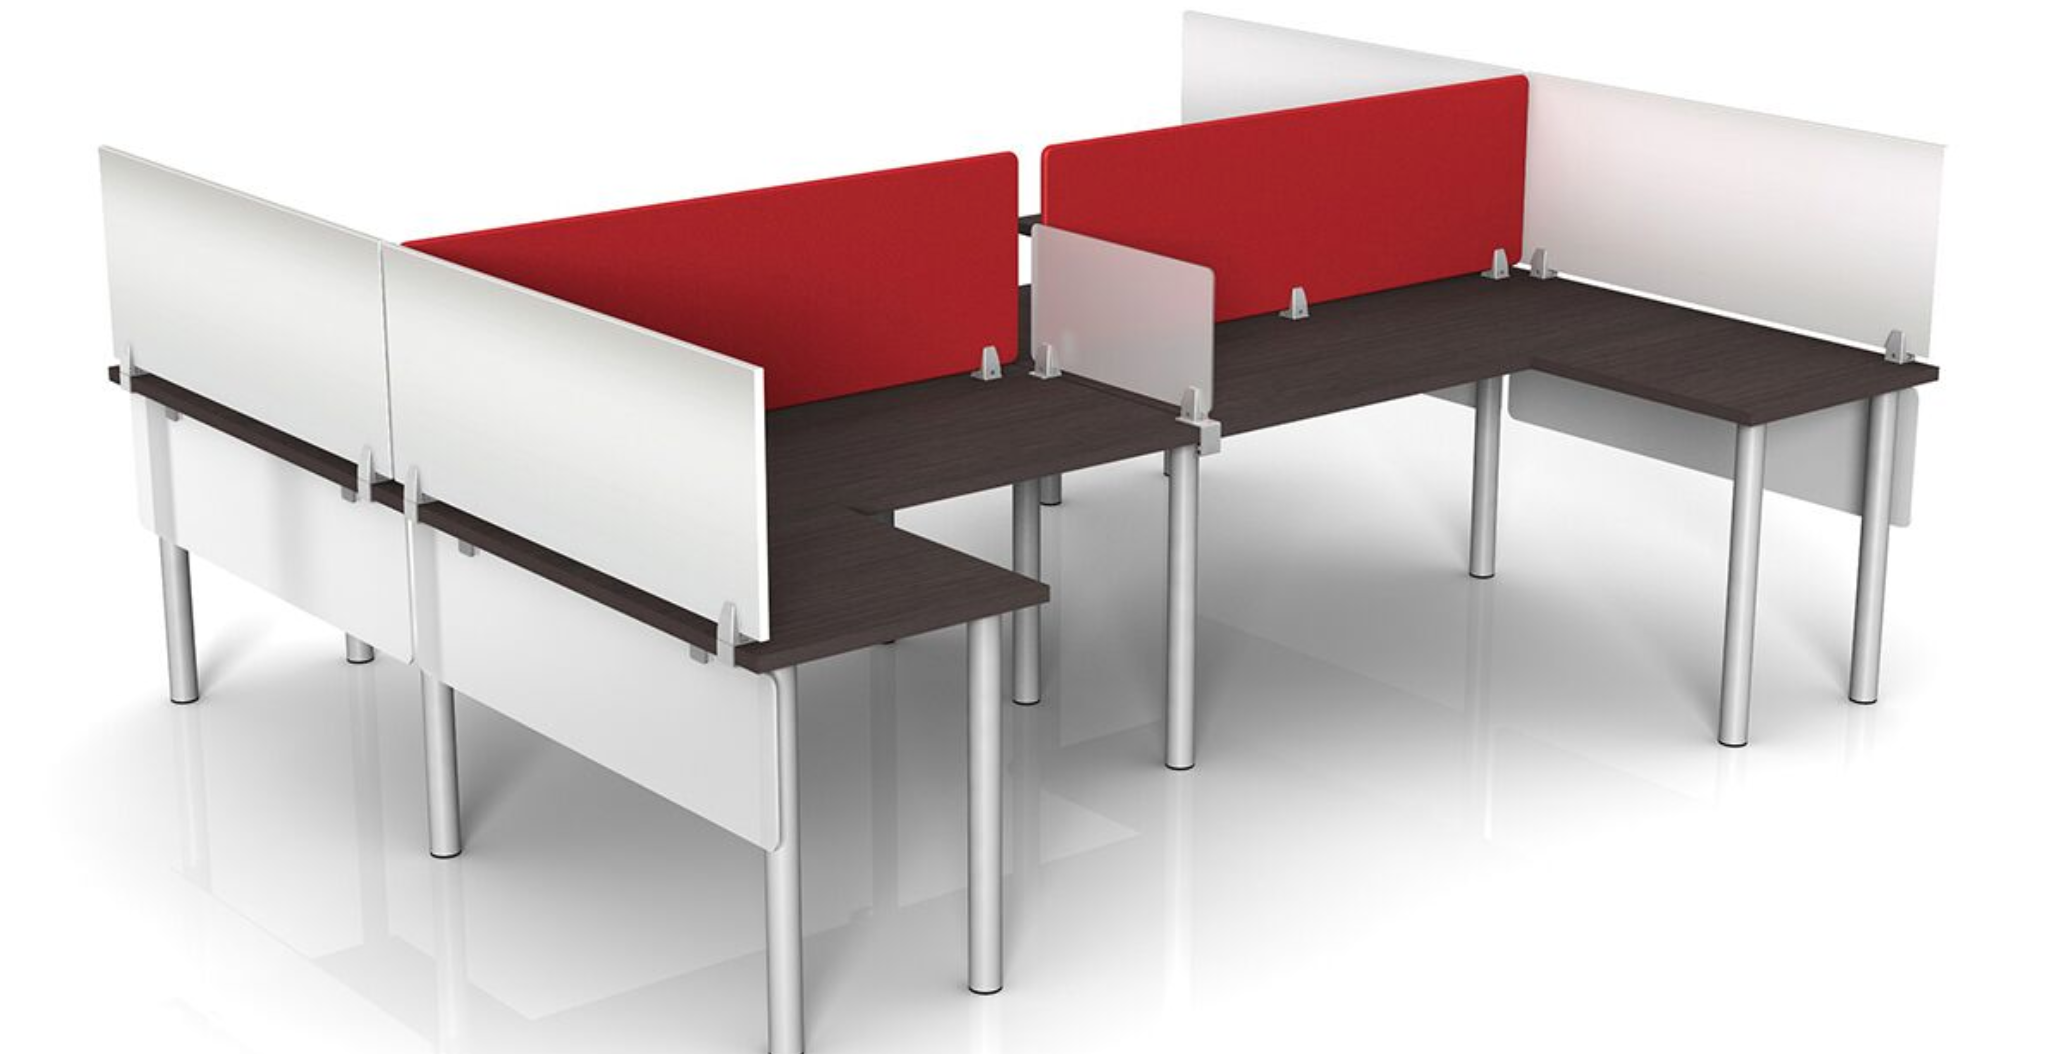 Ergonomic Custom Conference Tables And Learning Environment